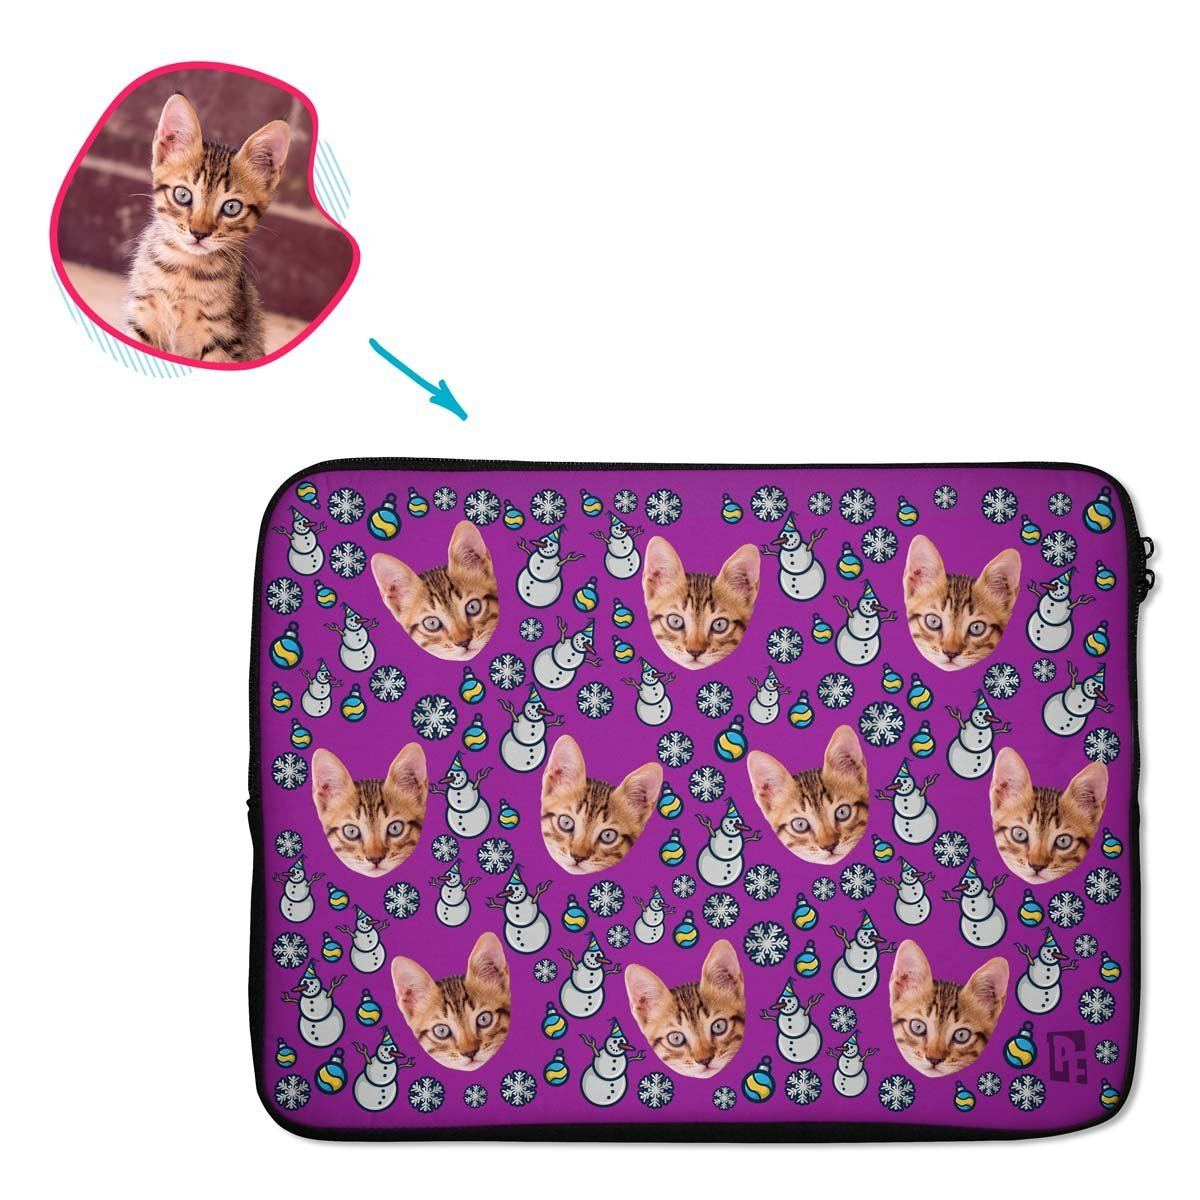 purple Snowman laptop sleeve personalized with photo of face printed on them